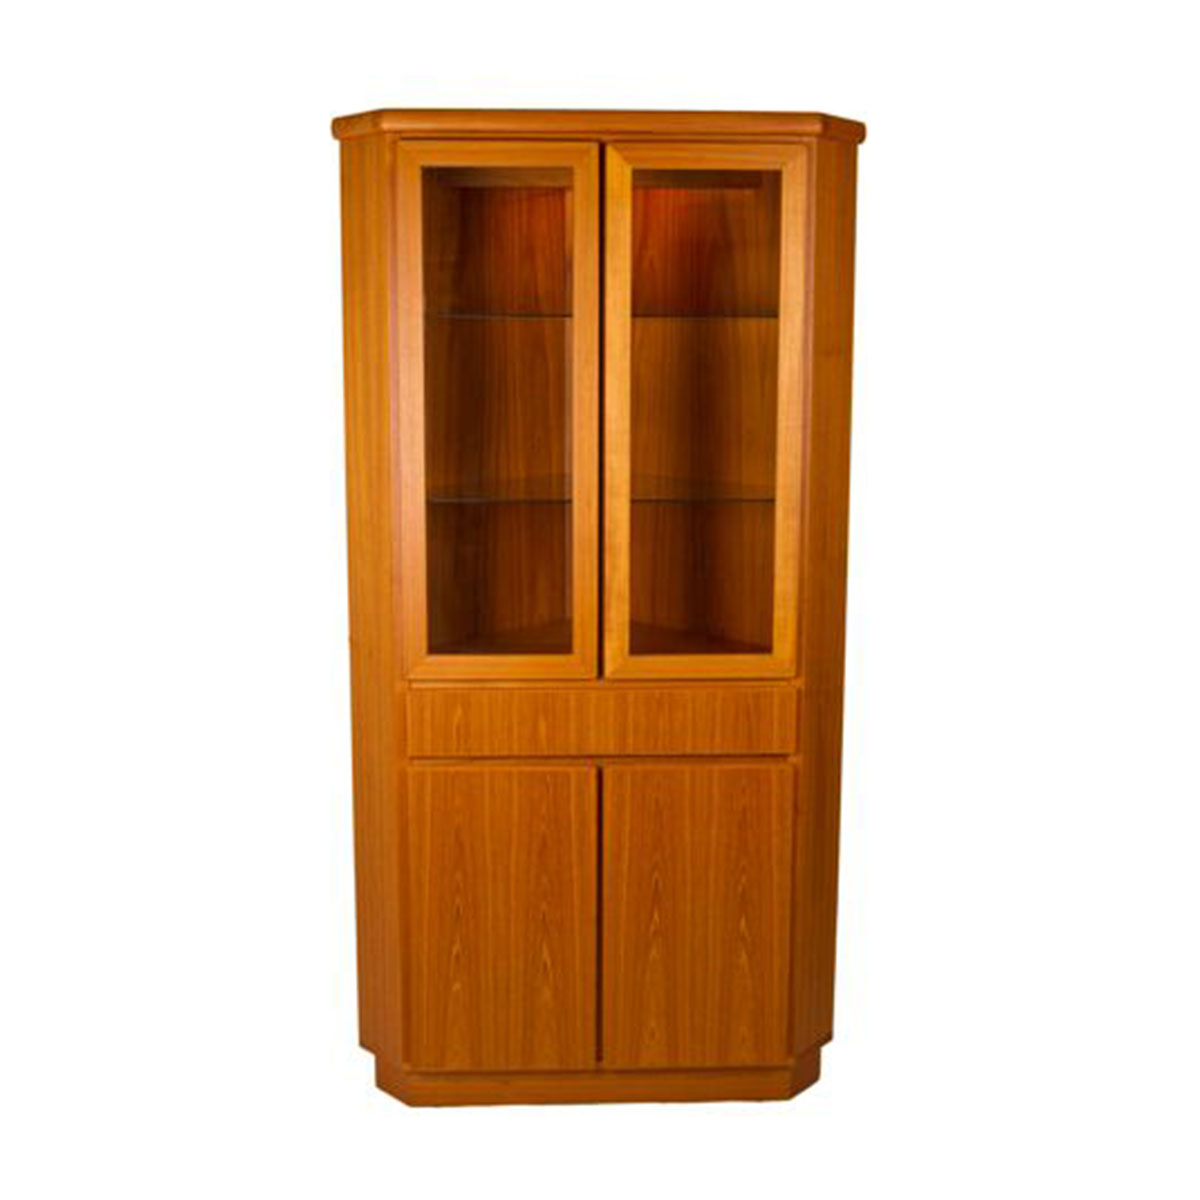 Unique Danish Modern Teak Lighted CORNER Display / Storage Cabinet